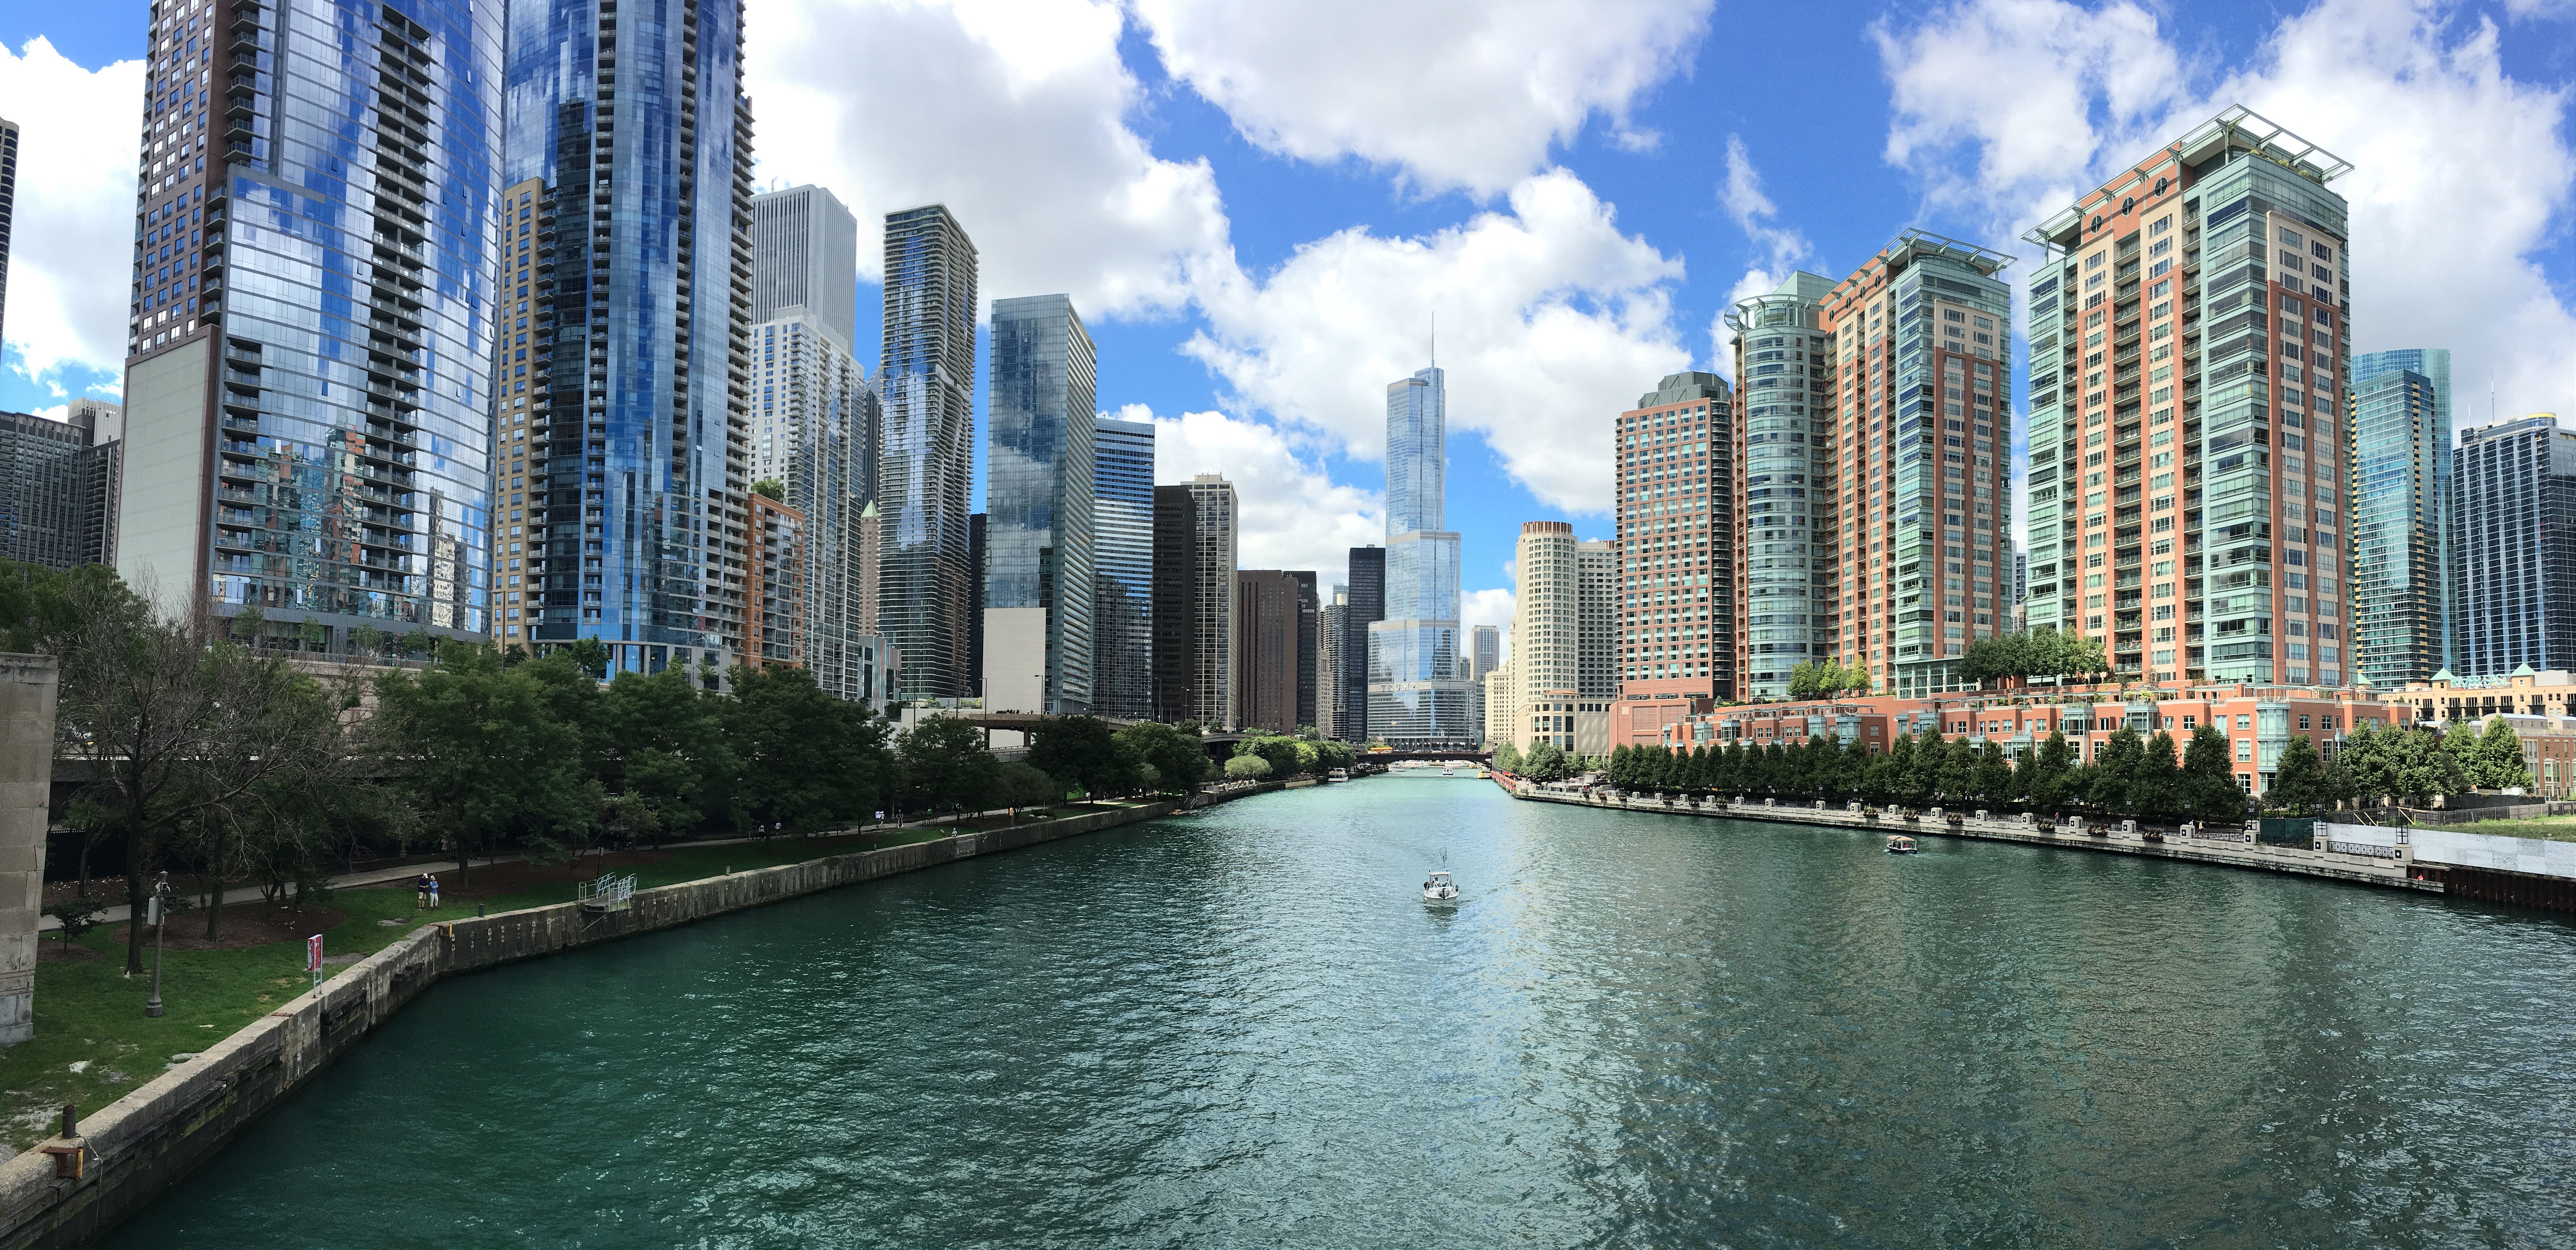 outplacement services in chicago